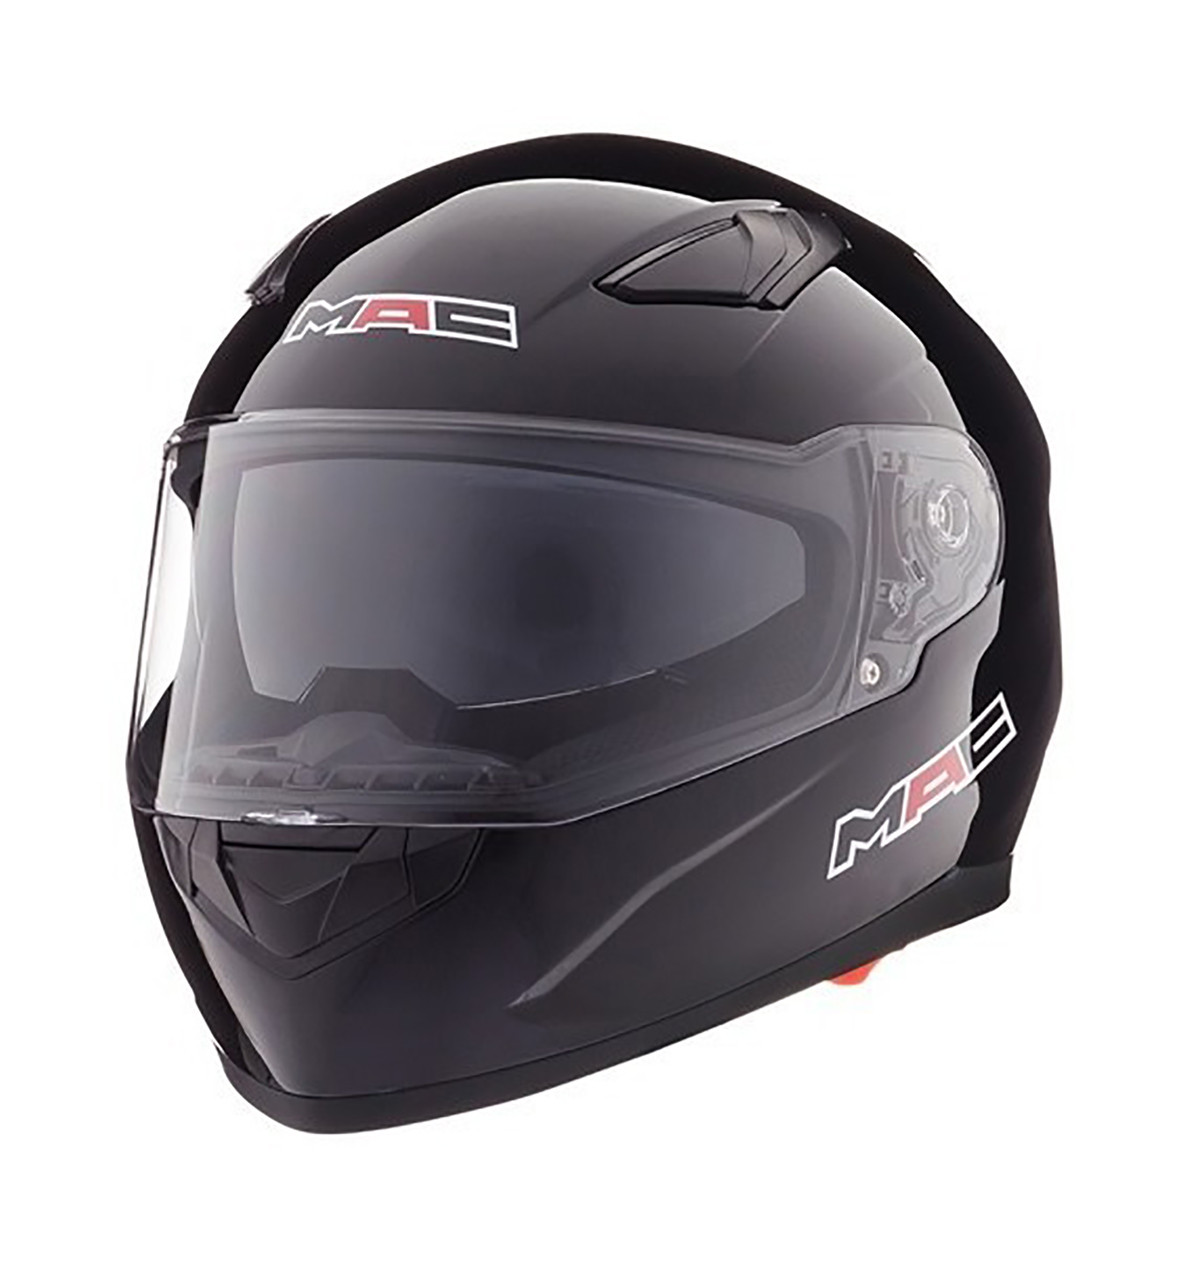 Casco Integral Doble Visor Mac Gravity Negro Brillo